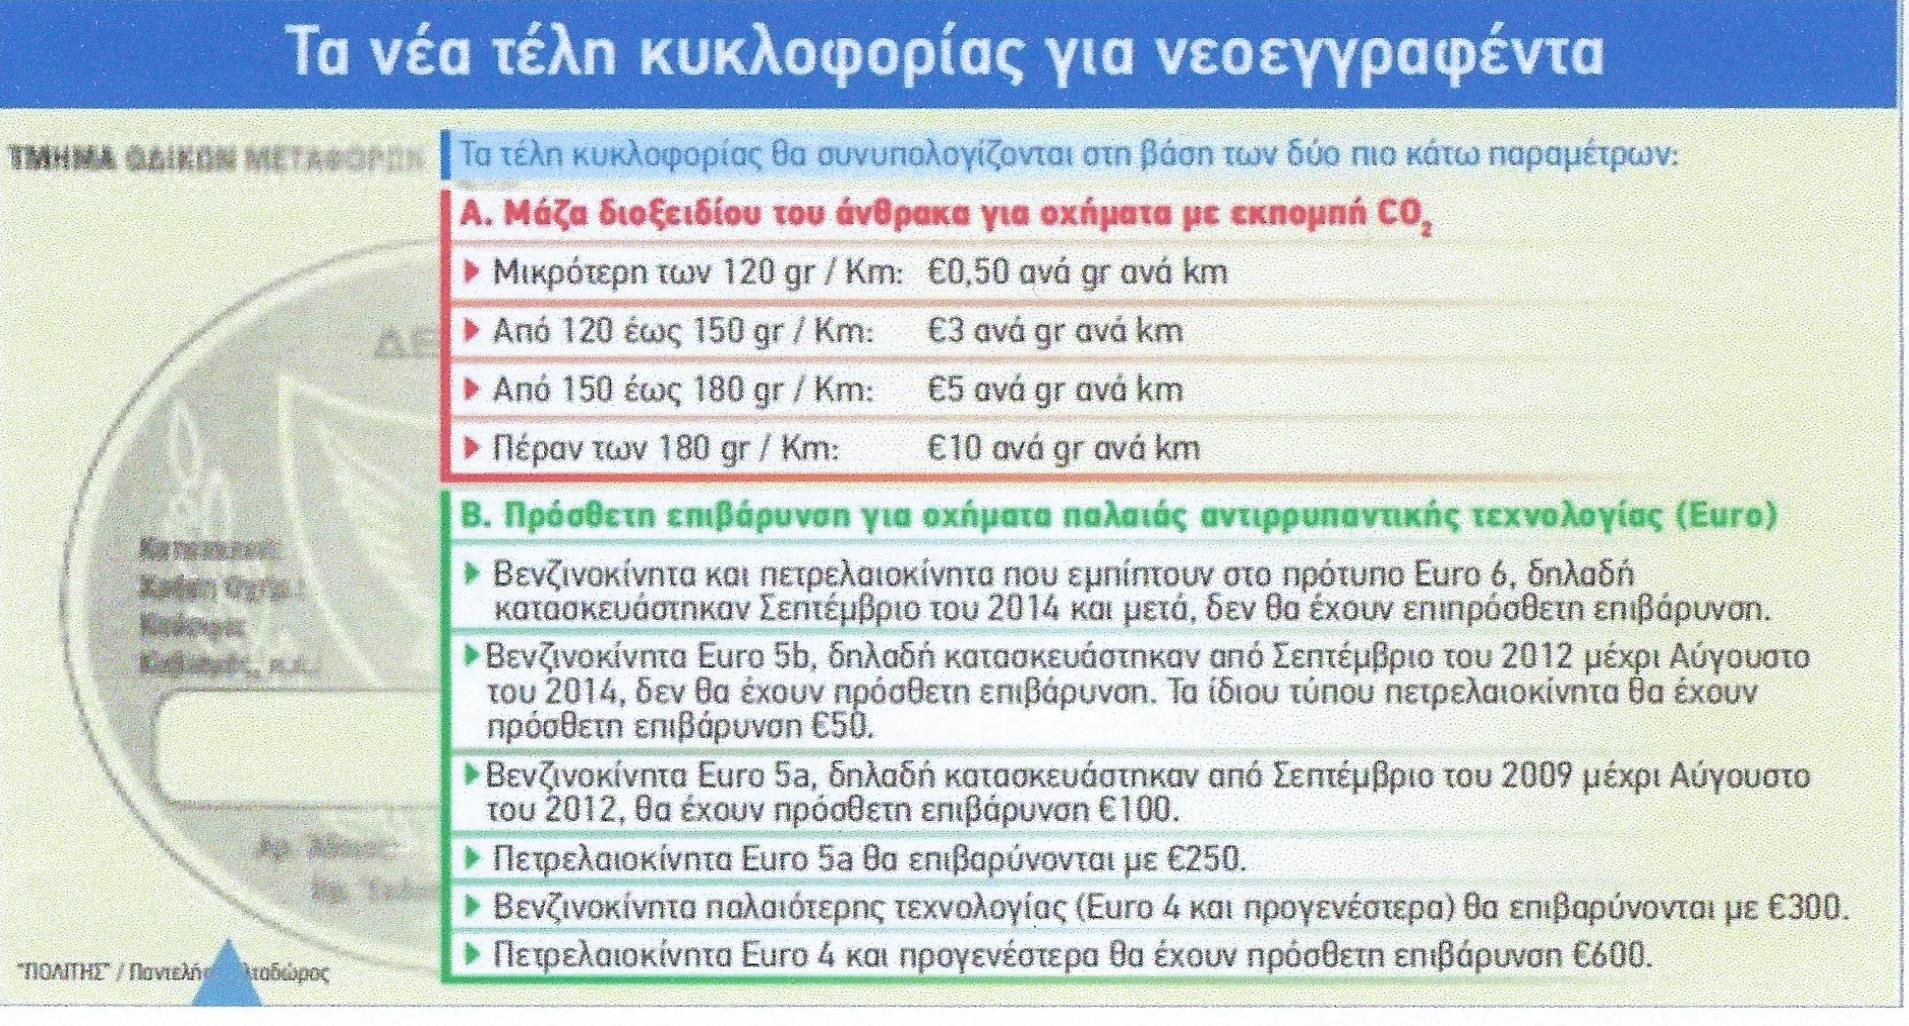 Cyprus Road Tax 2019 - The new circulation tax rates for new registrations